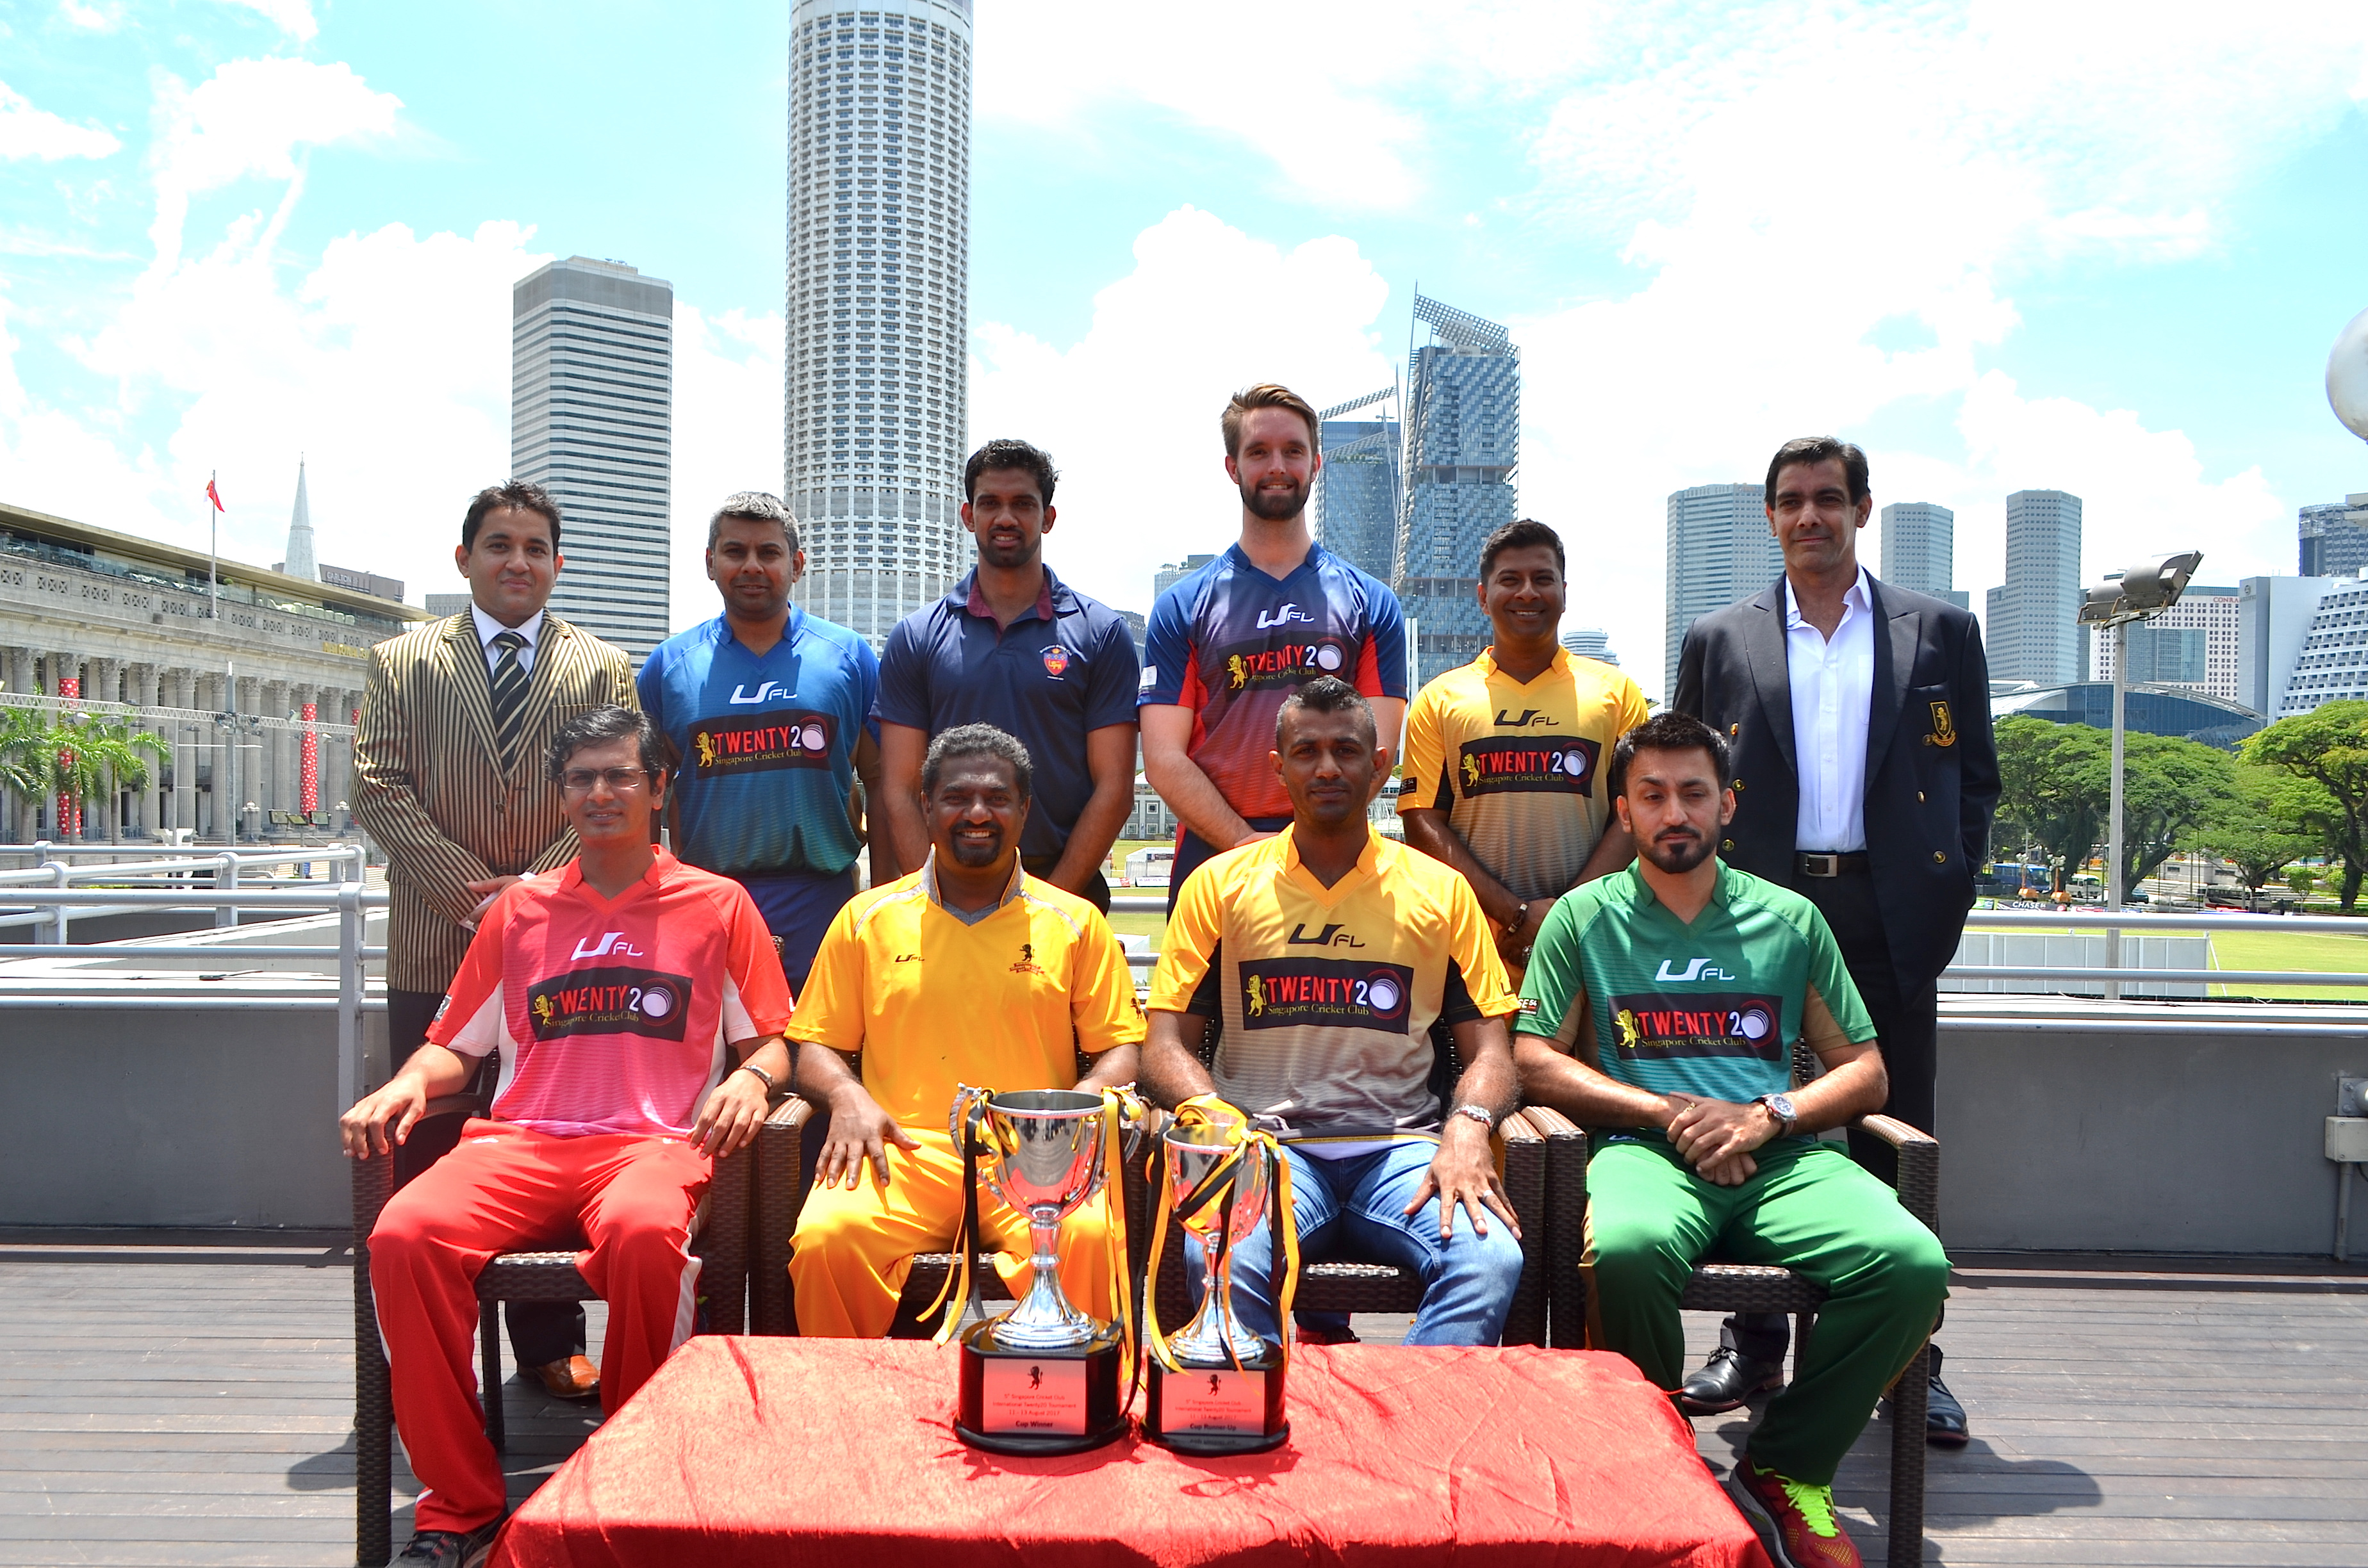 From left: (1st row) SES captain Dharmichand Mulewa, Muttiah Muralitharan, Ferveez Maharoof and SCG captain Kamil Khan. (2nd row) SCC T20 tournament chairman Push Sharma, Madras captain Jaikumar Hariesh, SSC captain Sachithra Senanayaka, Melbourne captain Matthew Brown, SCC captain Riaz Hussein and SCC chairman Sher Baljit Singh.